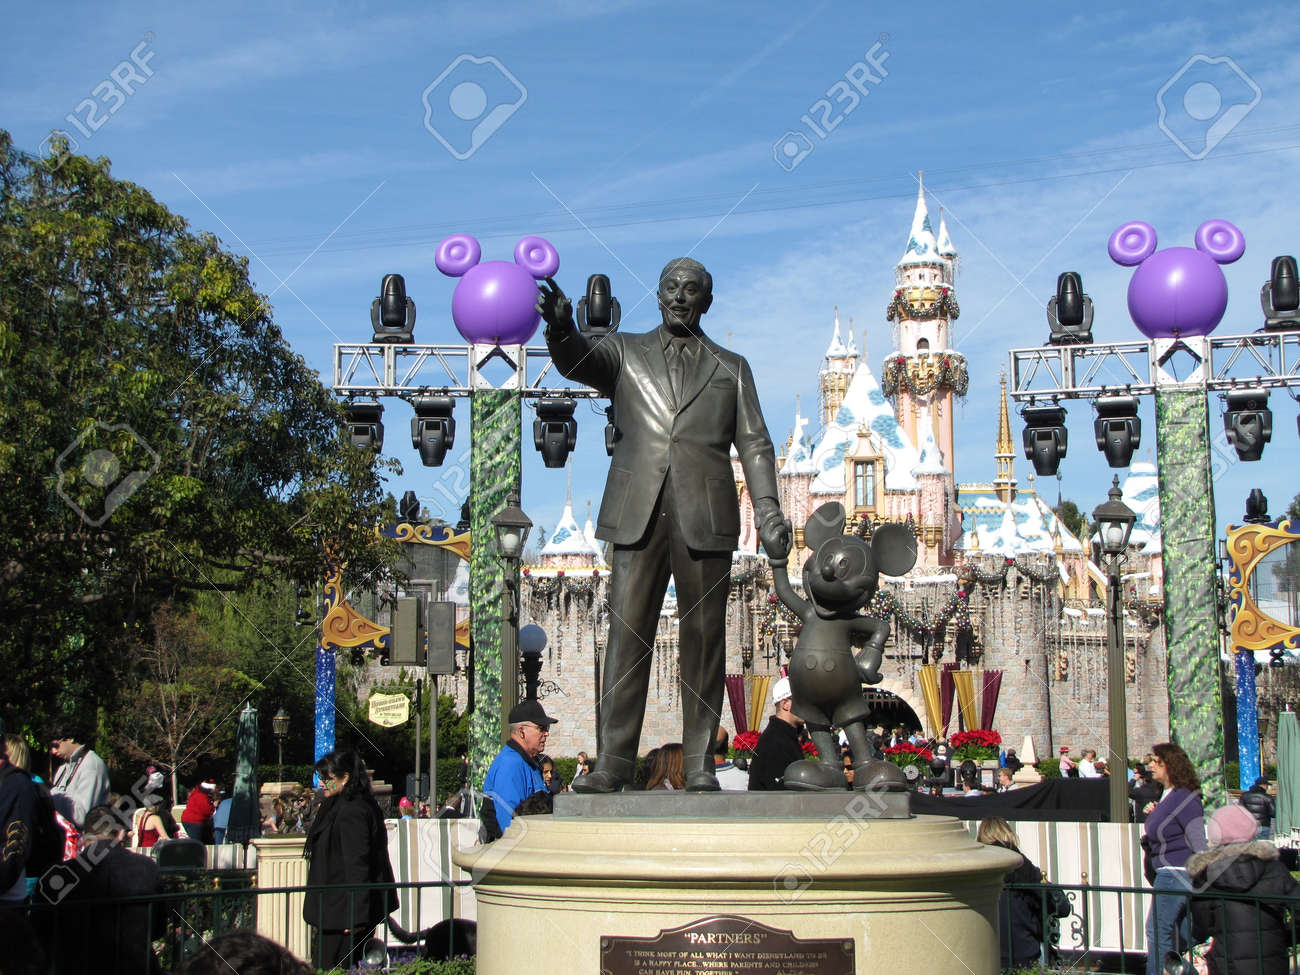 Standbeeld Walt Disney.A Statue Of Walt Disney And Mickey Mouse At The Disneyland Park